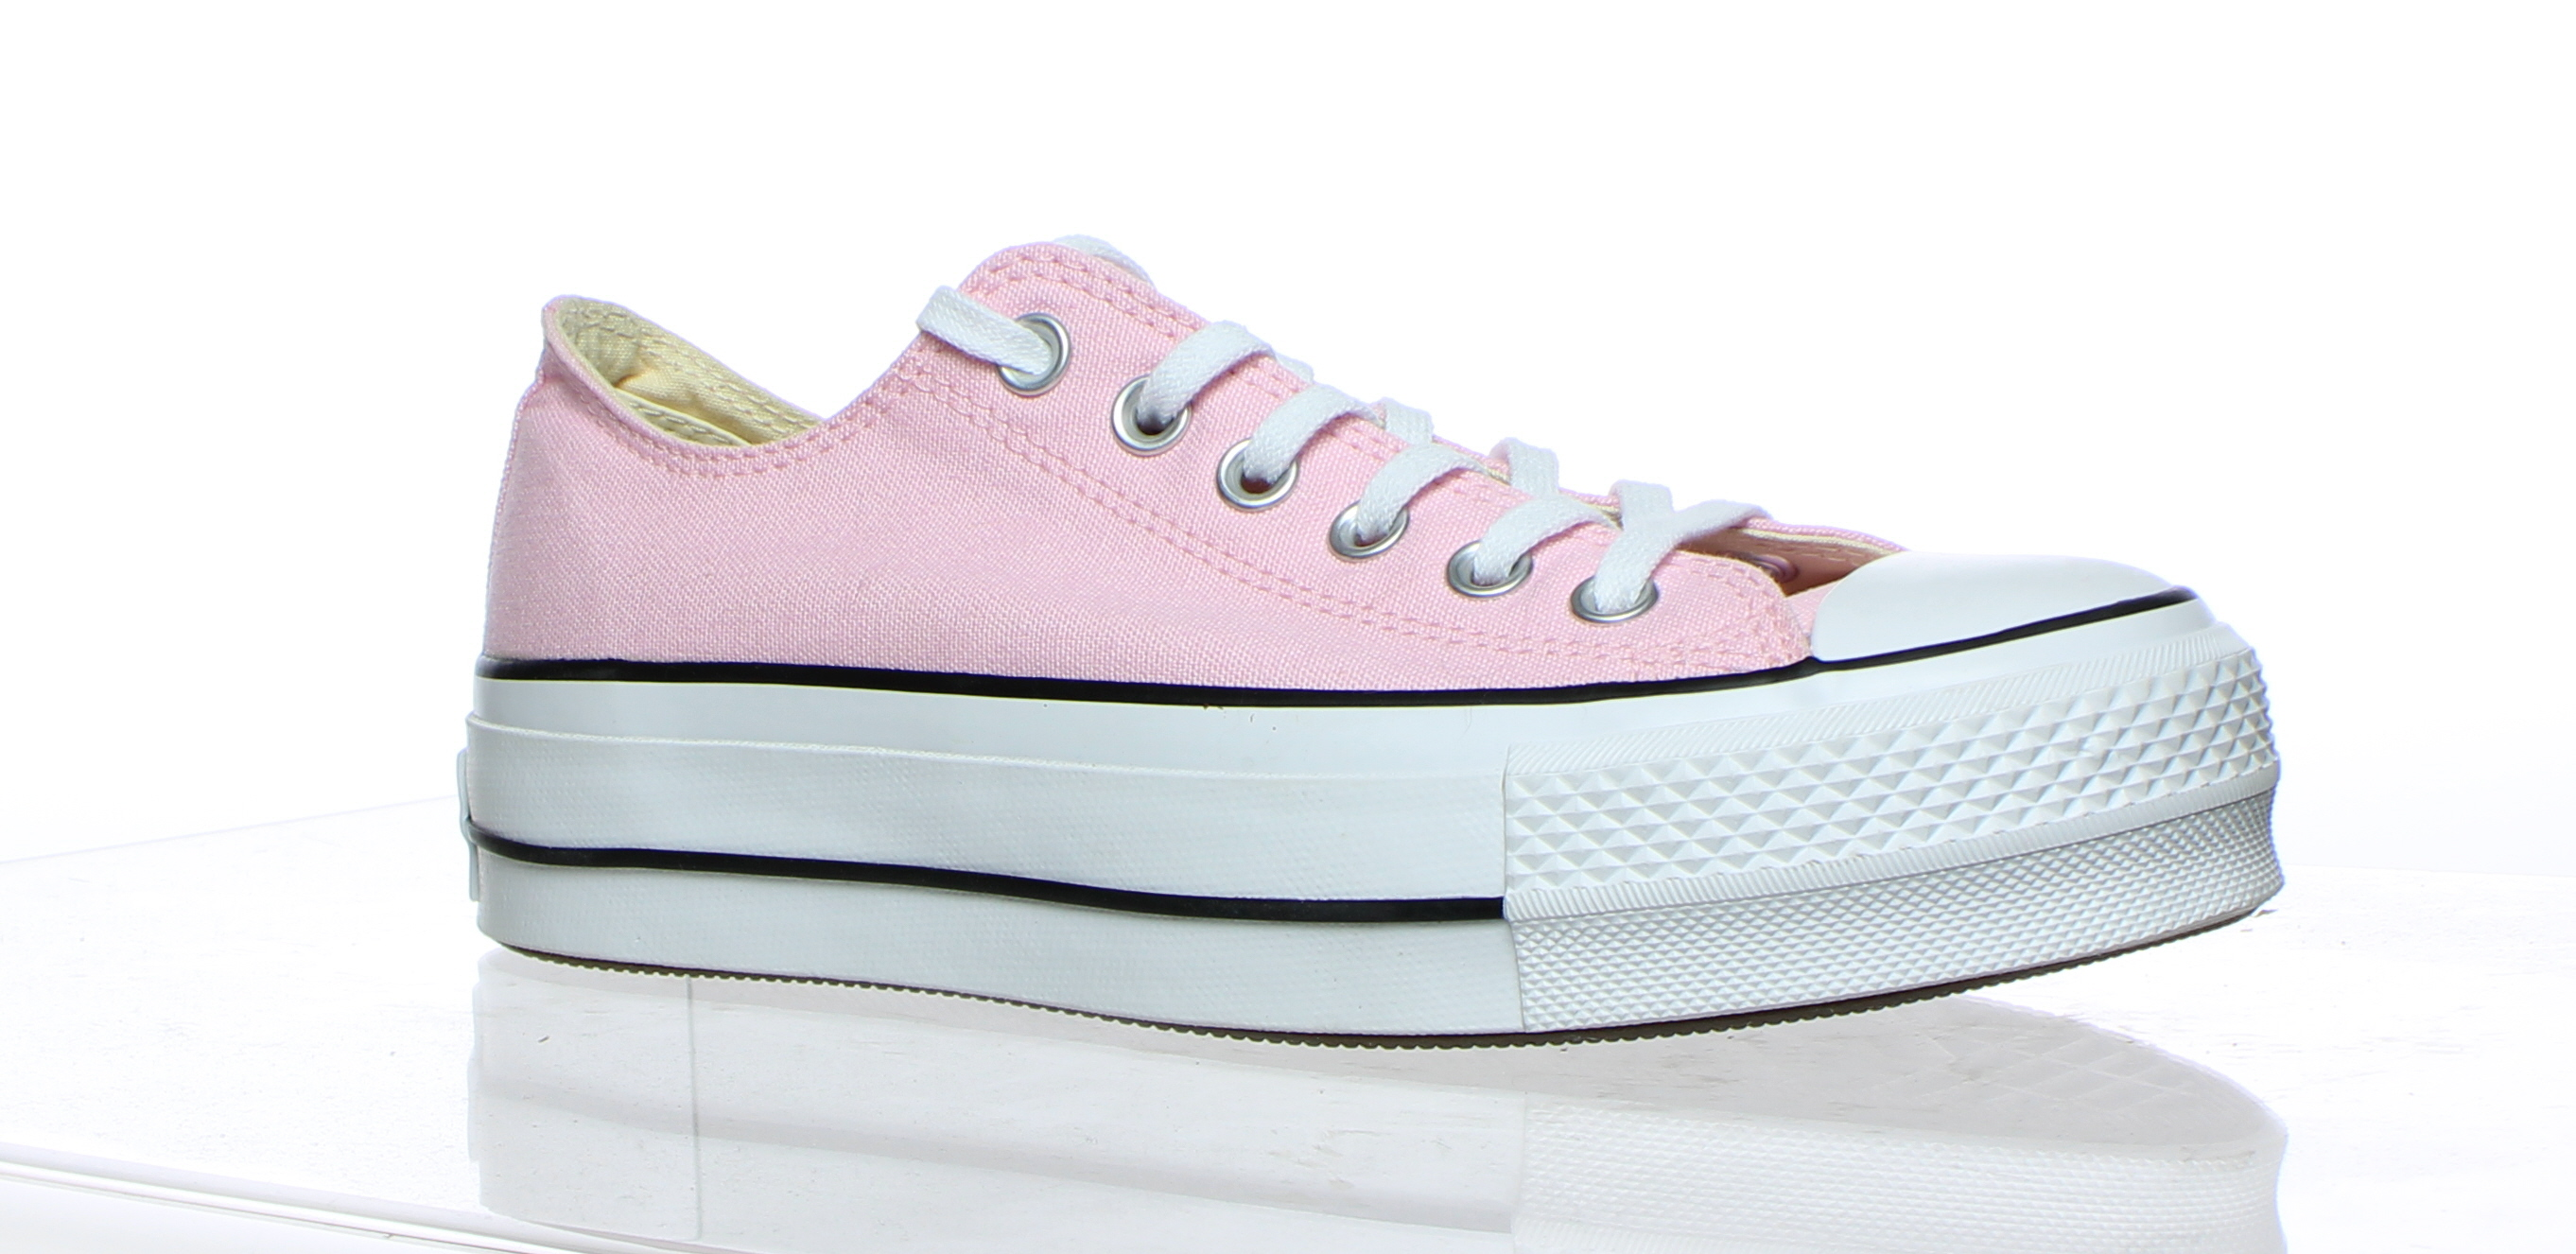 f24f0941feac Details about Converse Womens Lift Ox Pink Fashion Sneaker Size 7 (191232)